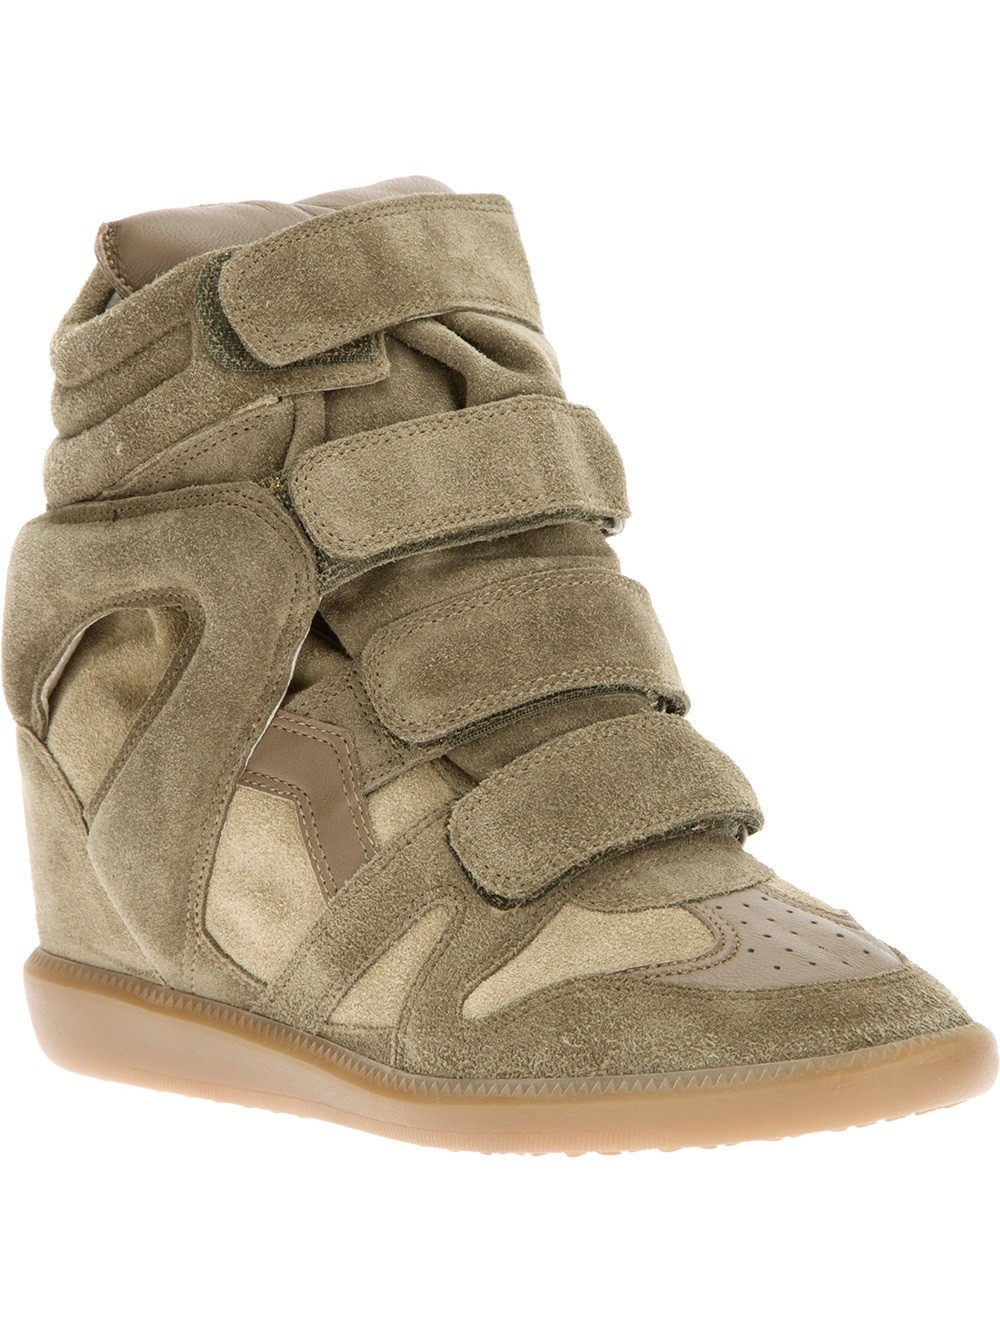 Isabel Marant Beckett Hi-Top Brown Women's Wedge Sneakers